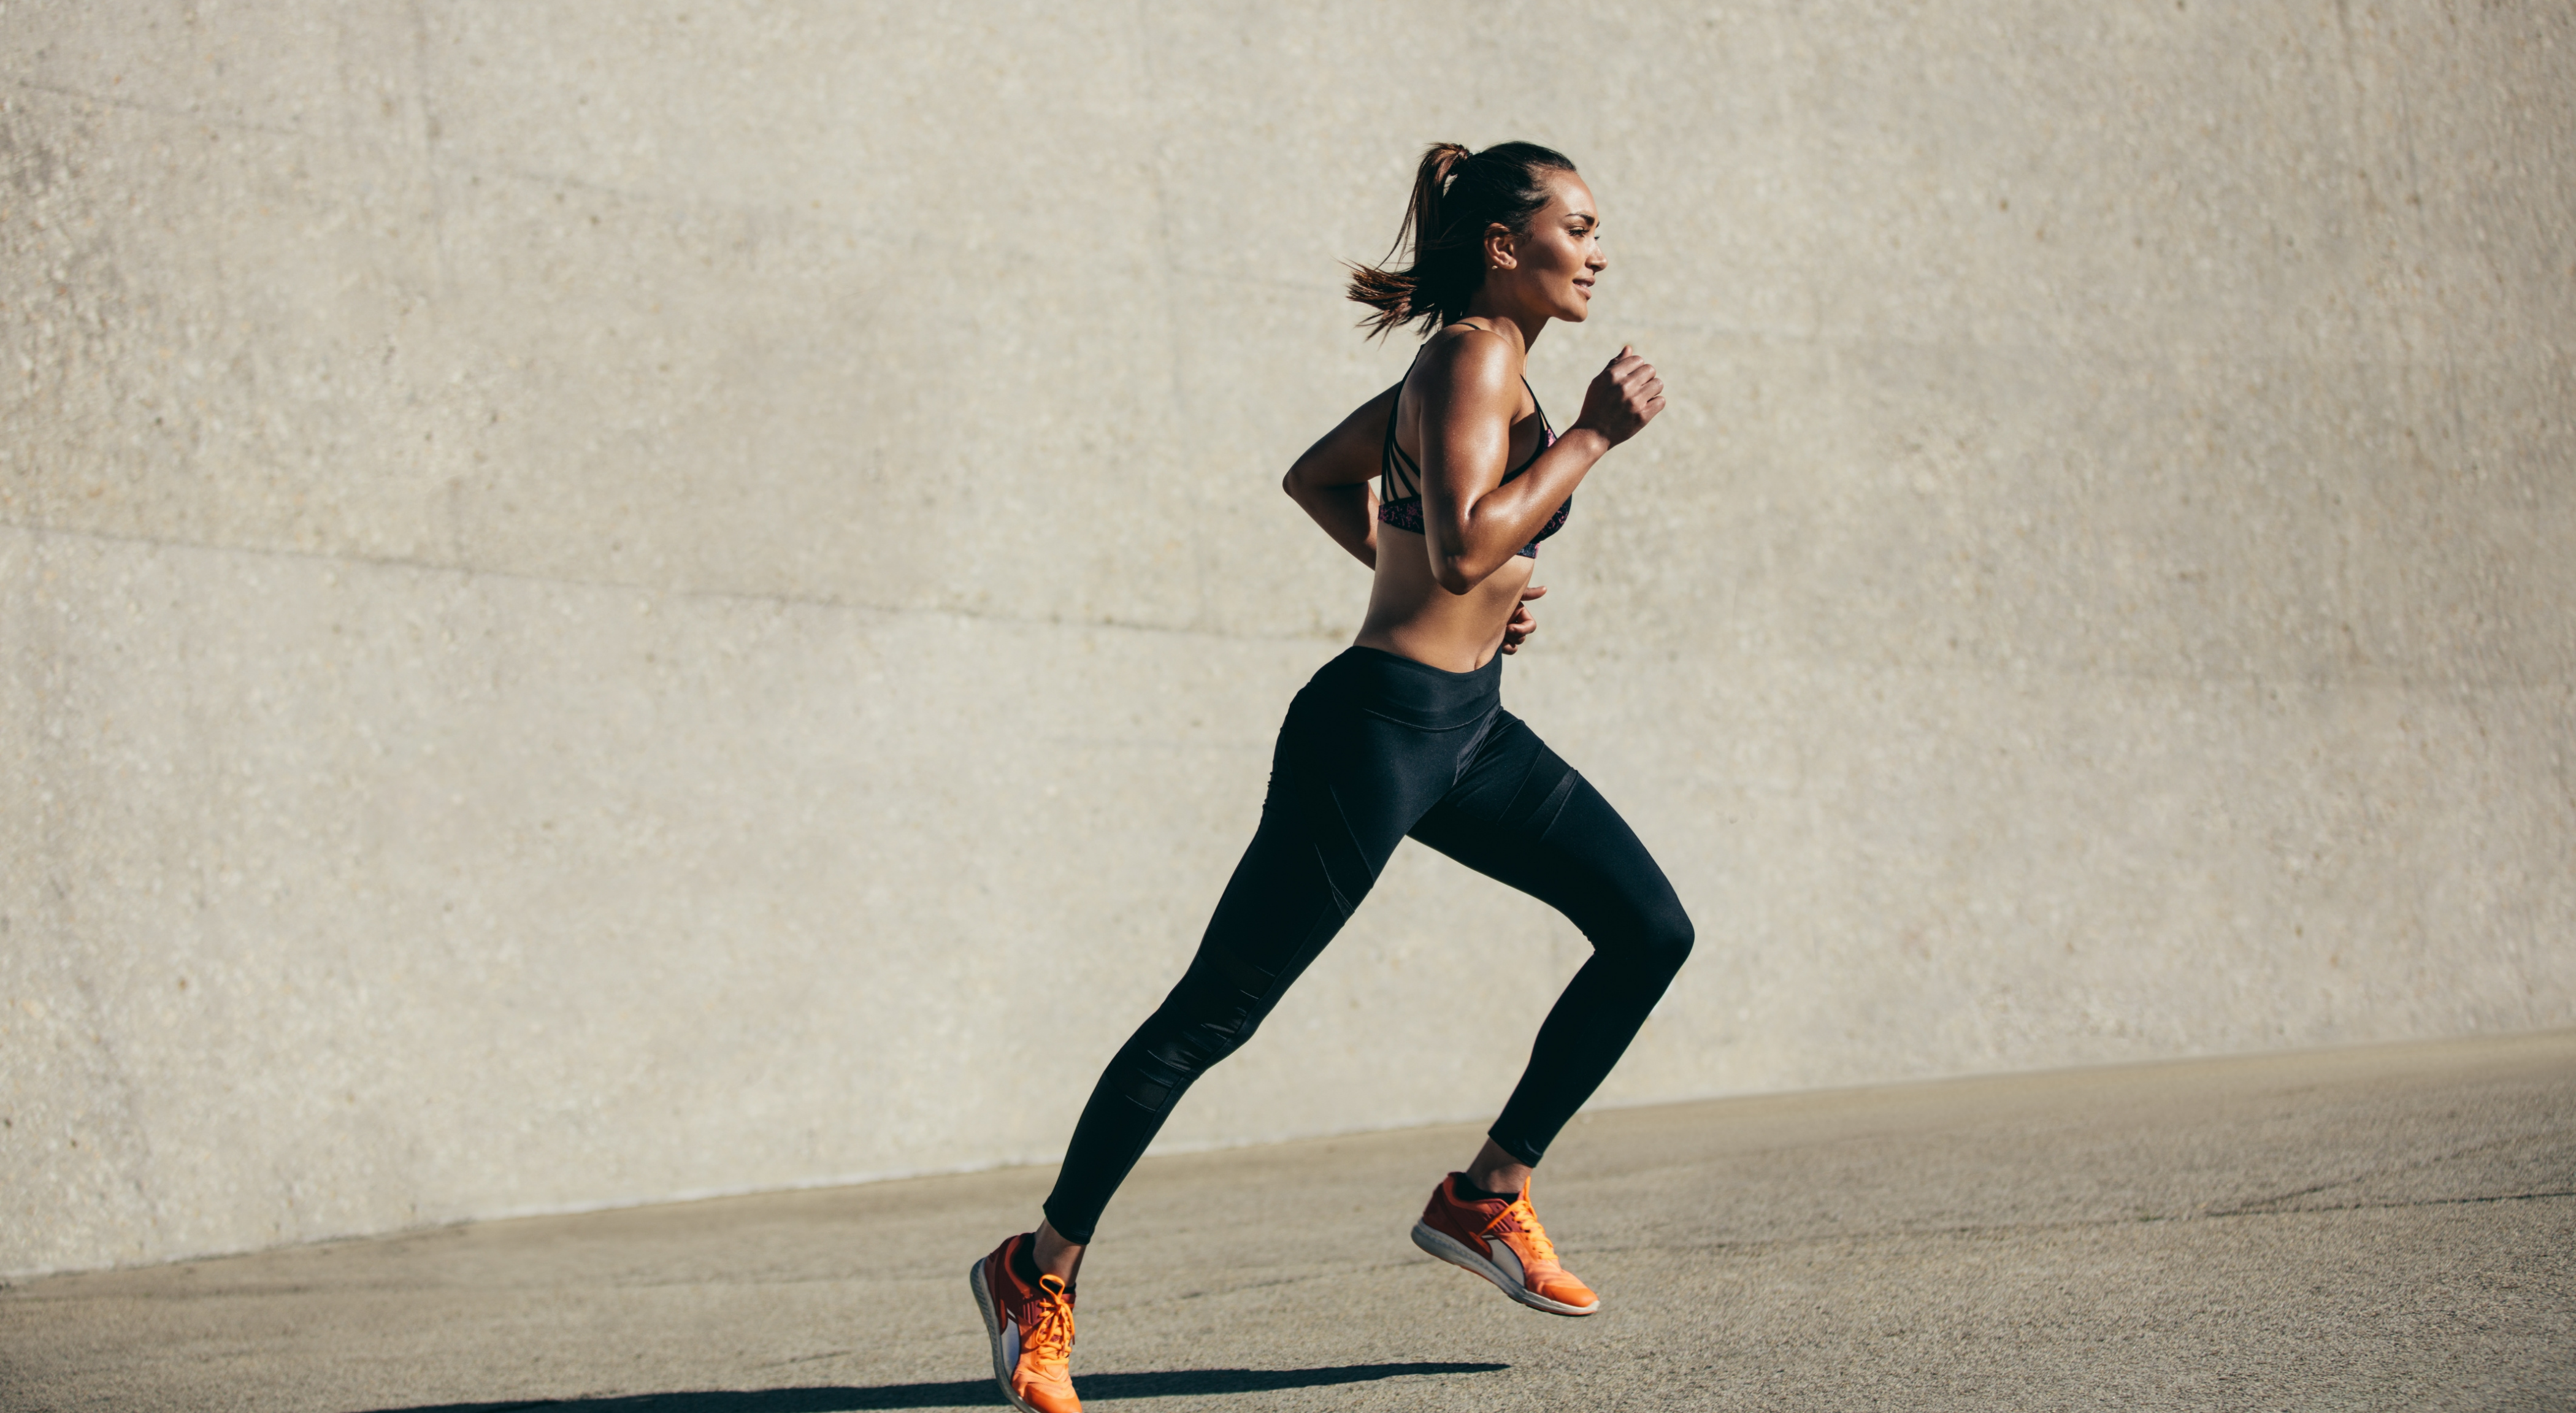 5 Tips To Improve Your Running Form